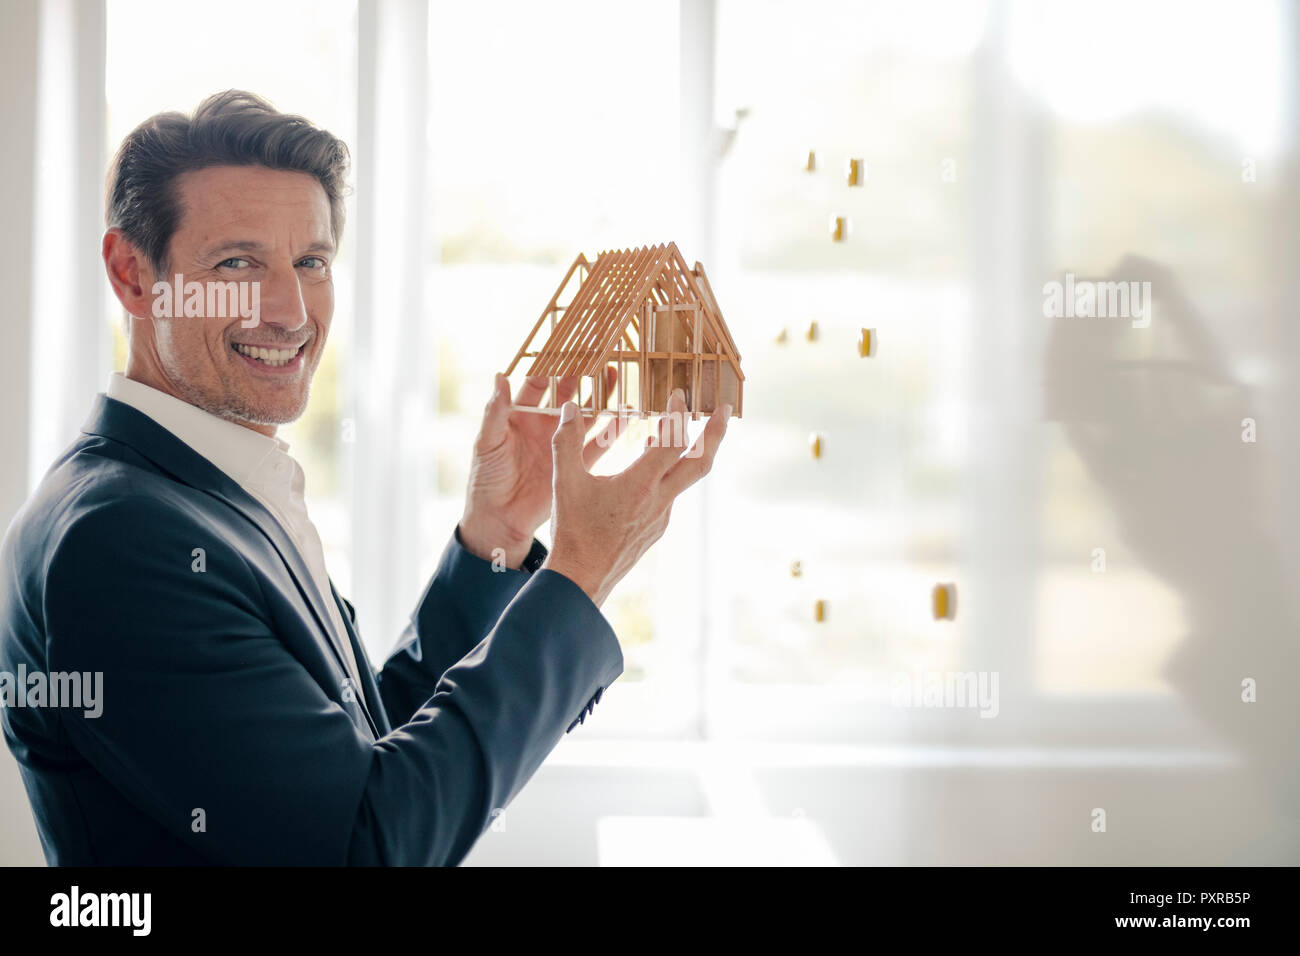 Mature businessman sharing his knowledge with younger colleague - Stock Image